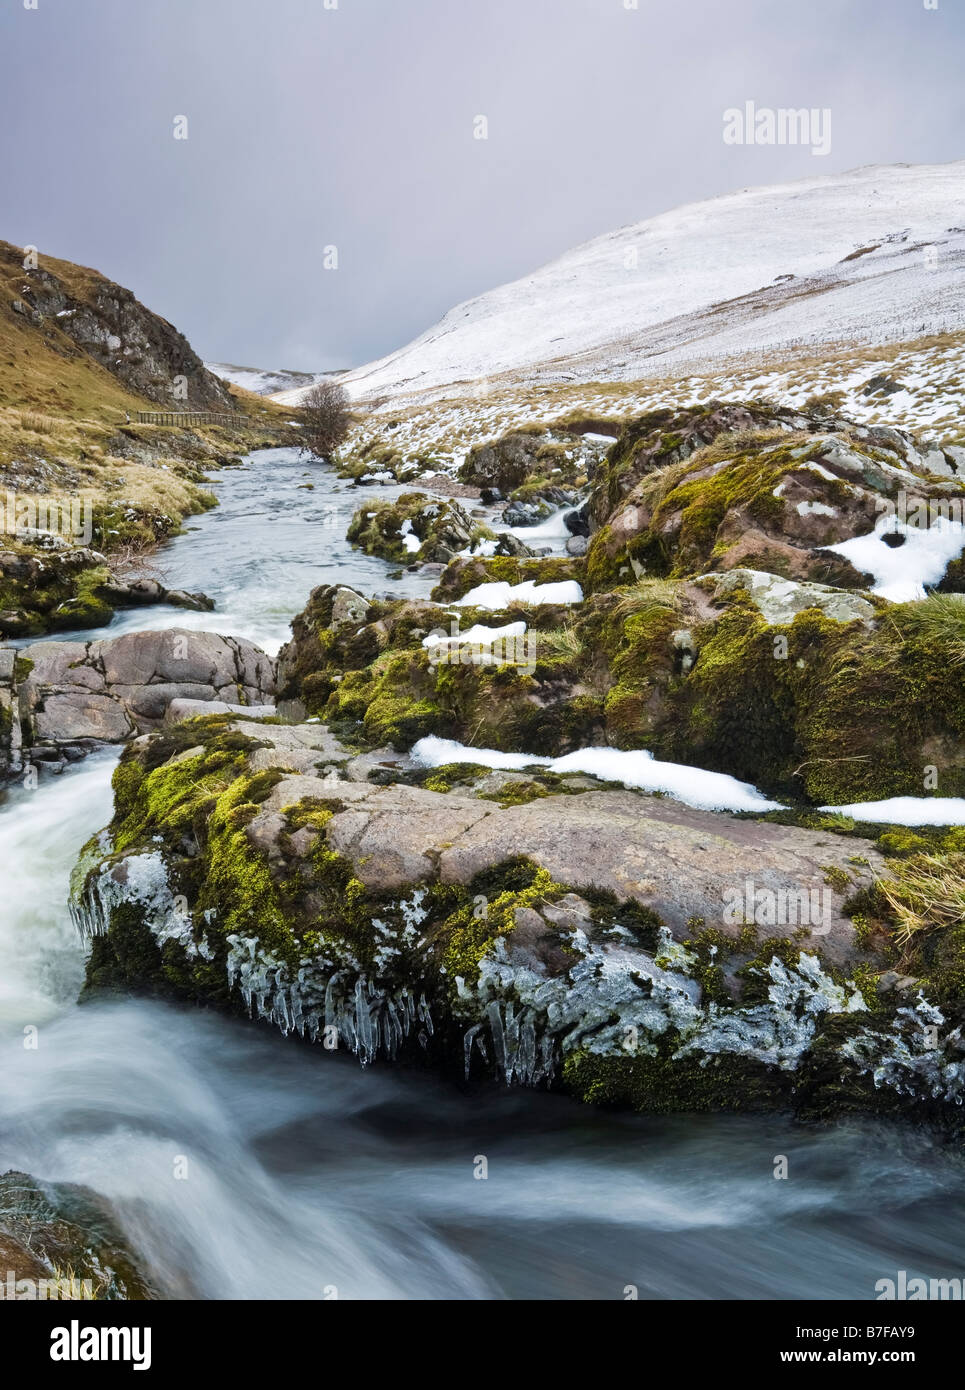 The RIver Coquet and the Coquet Valley in the southern Cheviots, Northumberland National Park, England - Stock Image